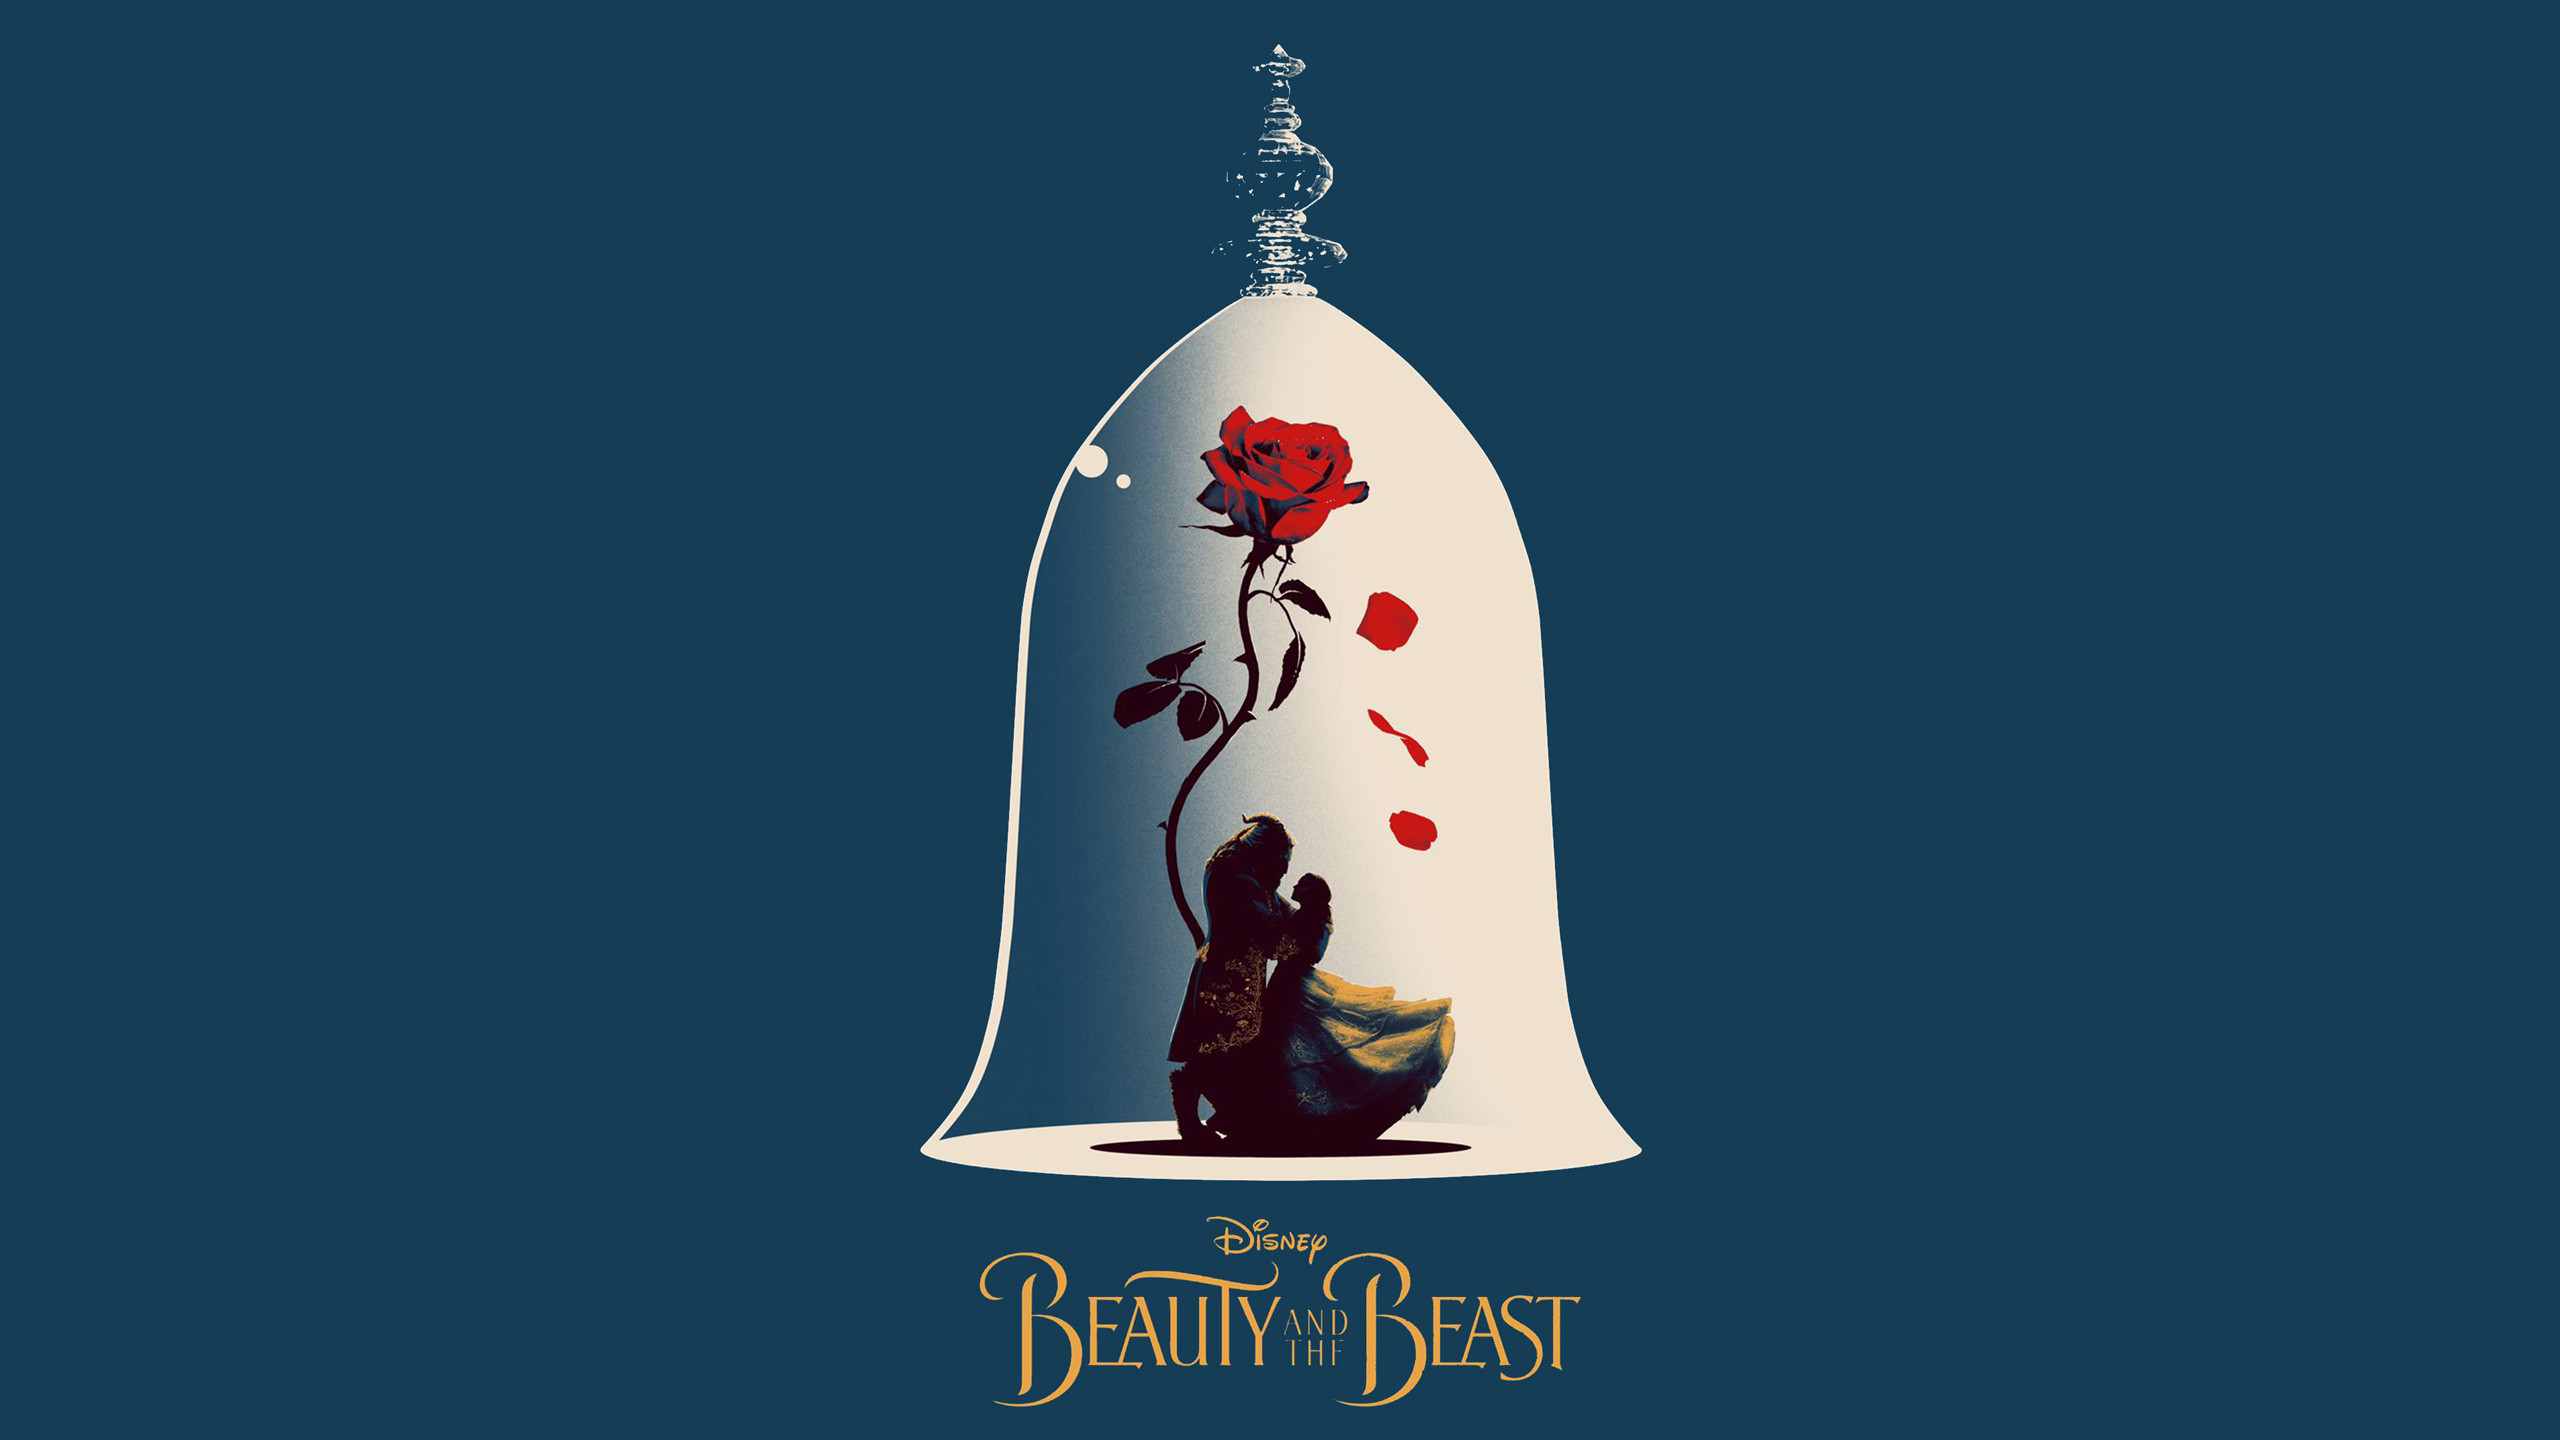 1029574 Popular Beauty And The Beast Wallpaper 2560x1440 Mobile